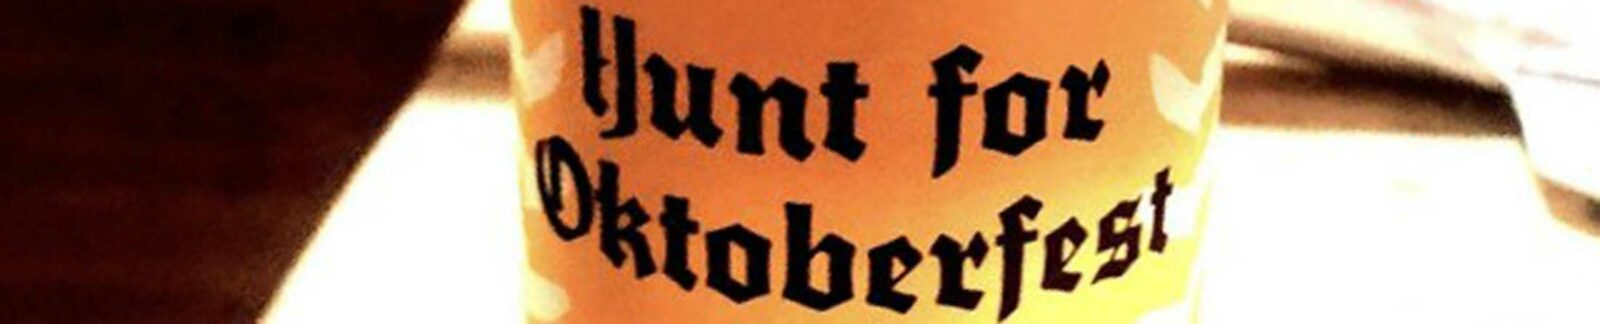 Hunt for Oktoberfest beer header